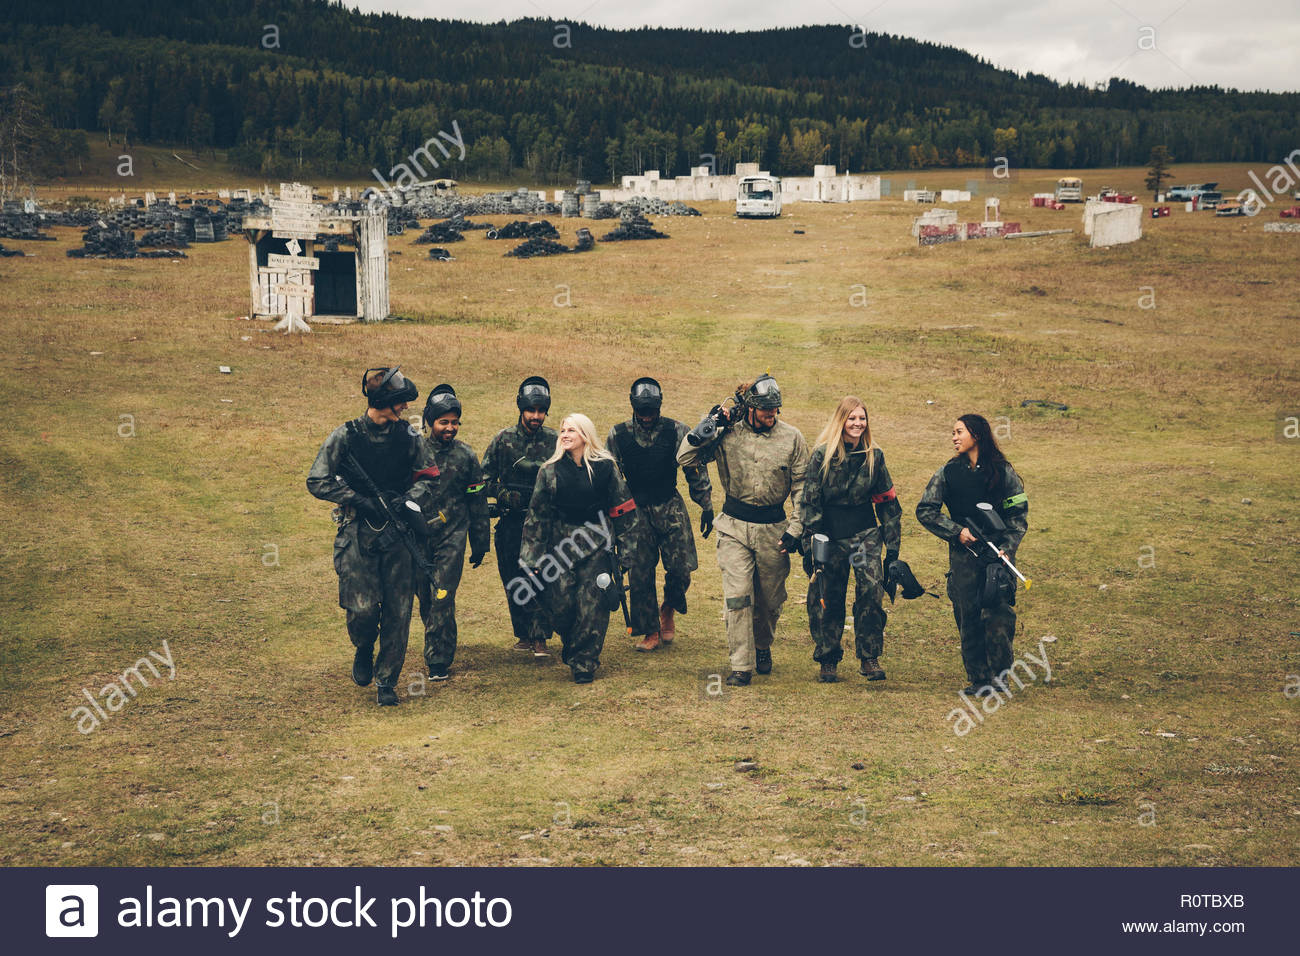 Friends walking out to paintballing field - Stock Image